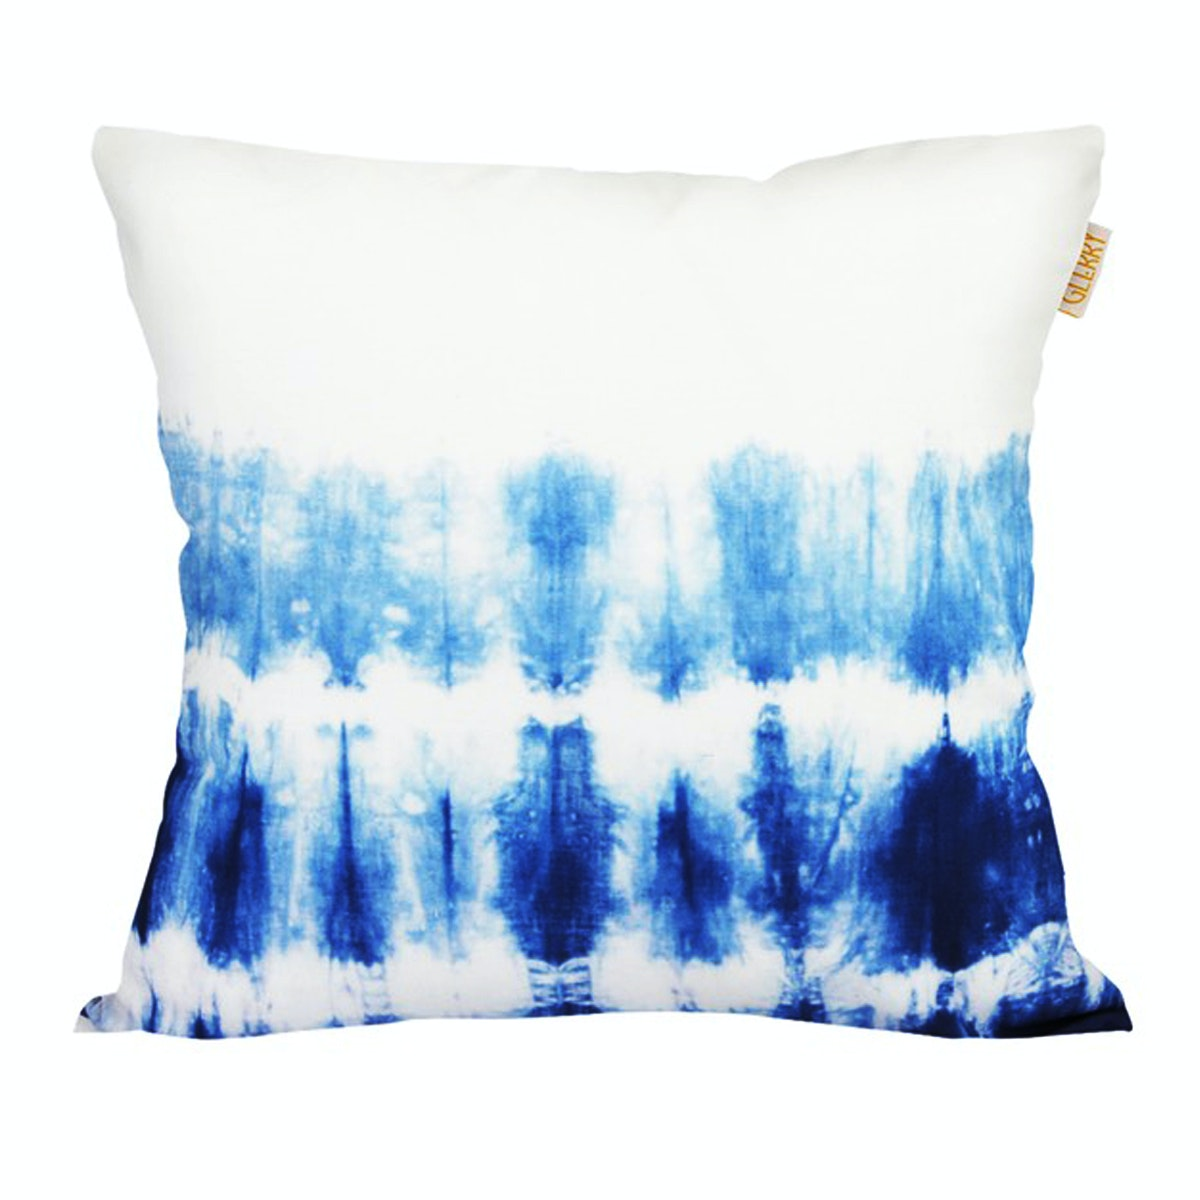 Glerry Home Decor Wave Cushion 40x40cm